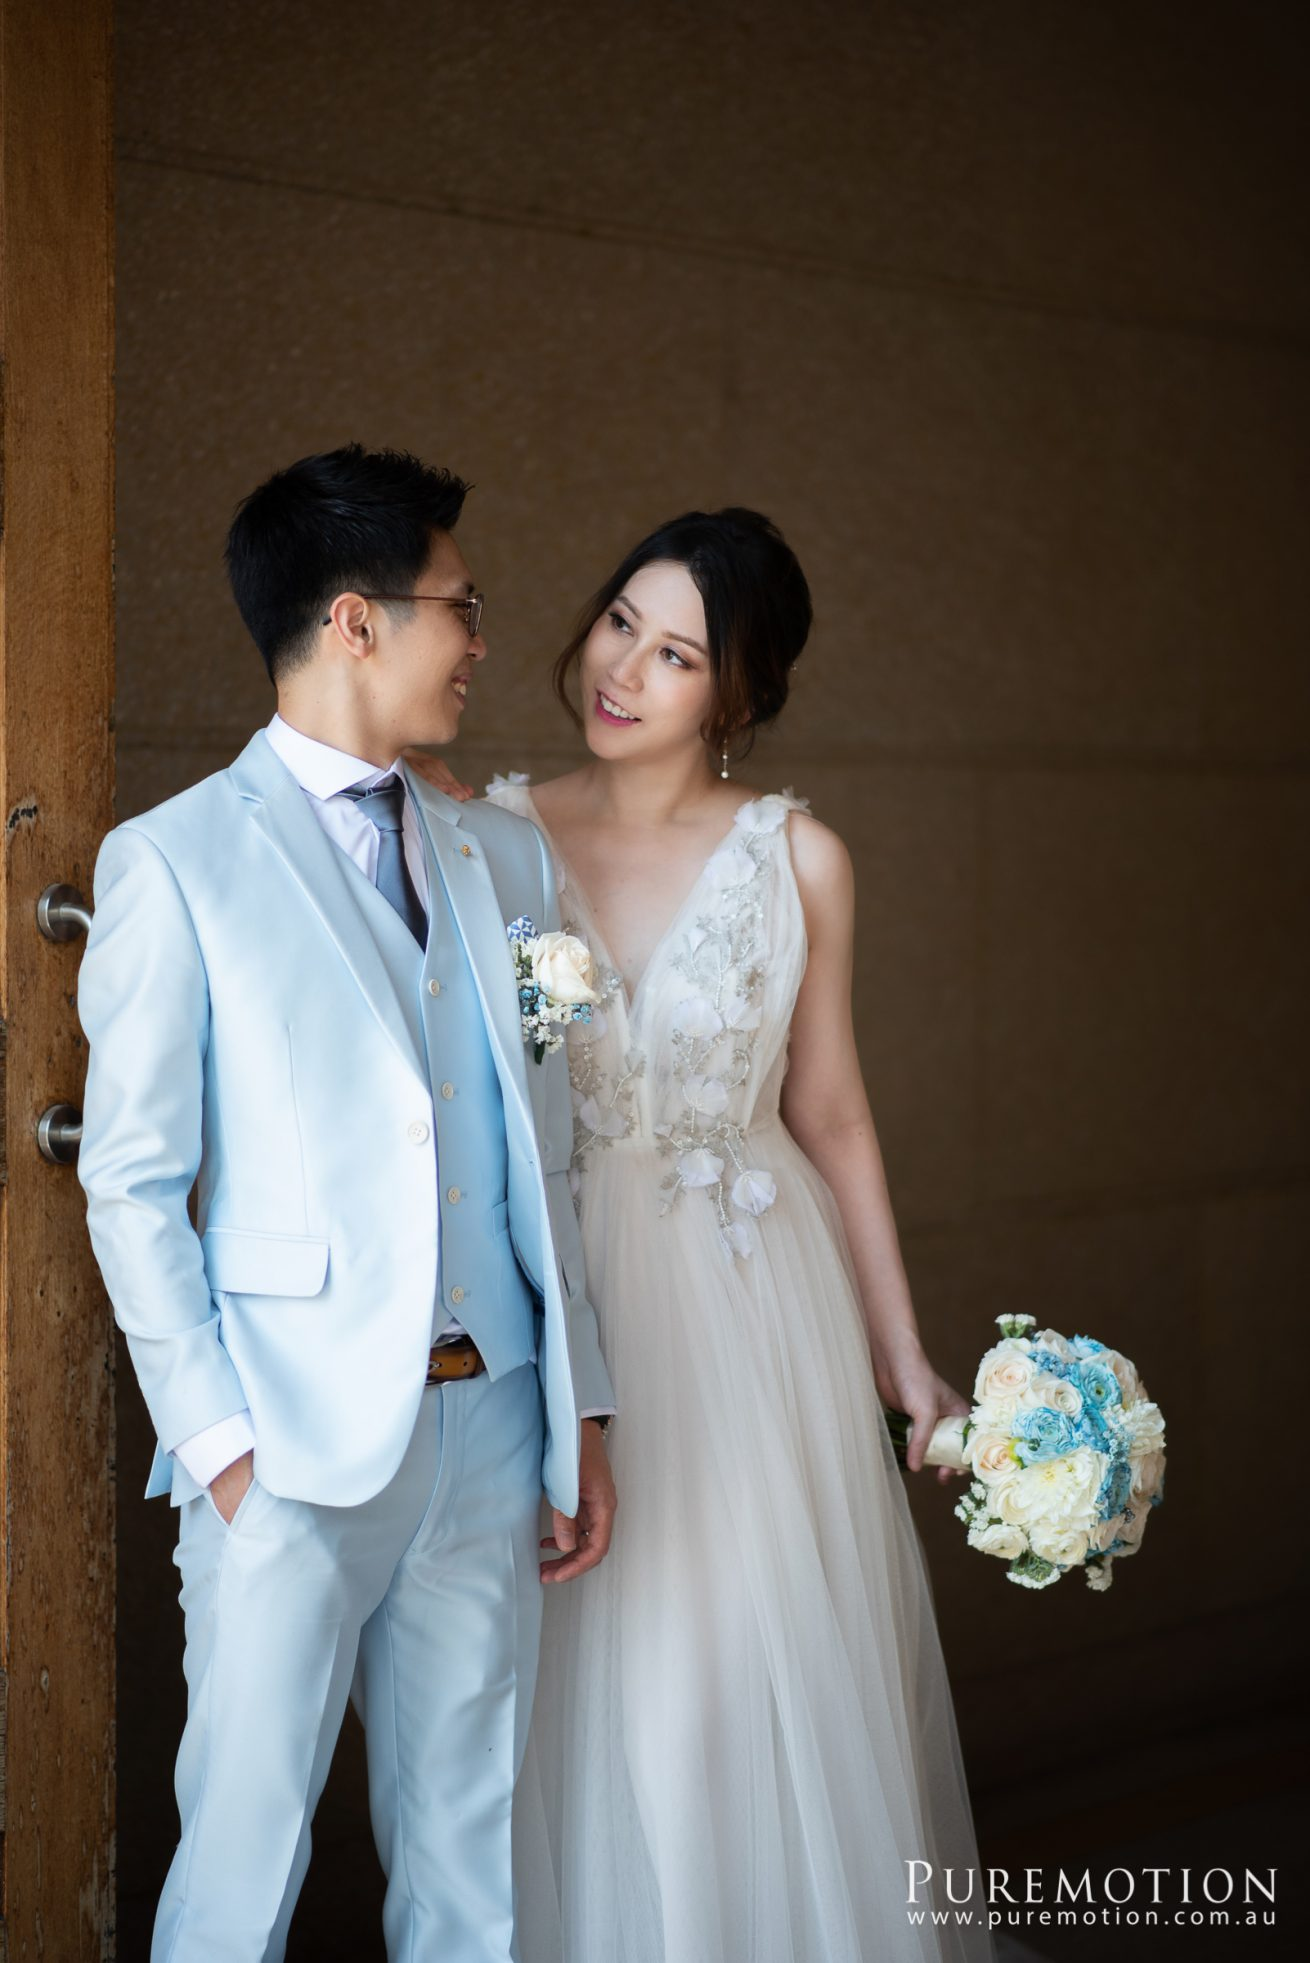 190928 Puremotion Wedding Photography Brisbane Alex Huang AnaDon-0049